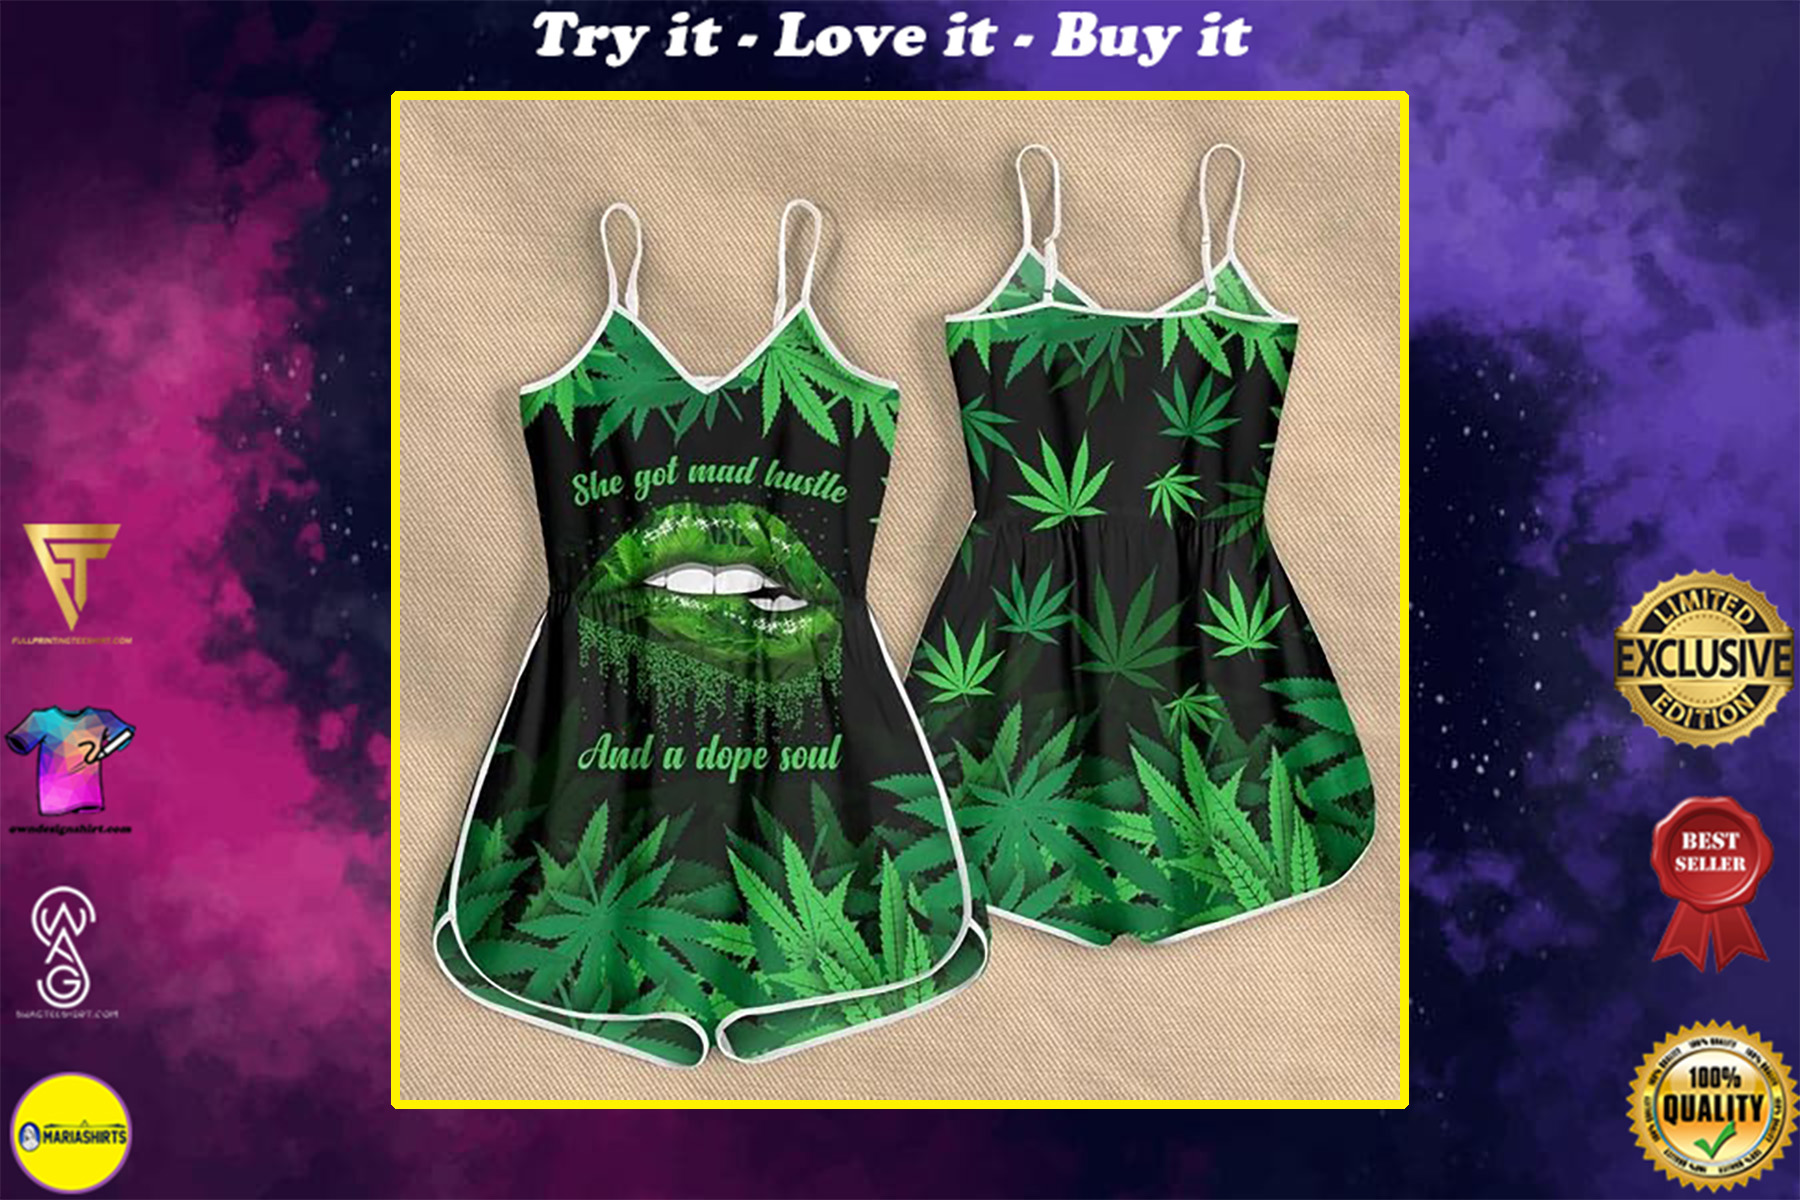 sexy lips she got mad hustle and a dope soul weed leaf rompers